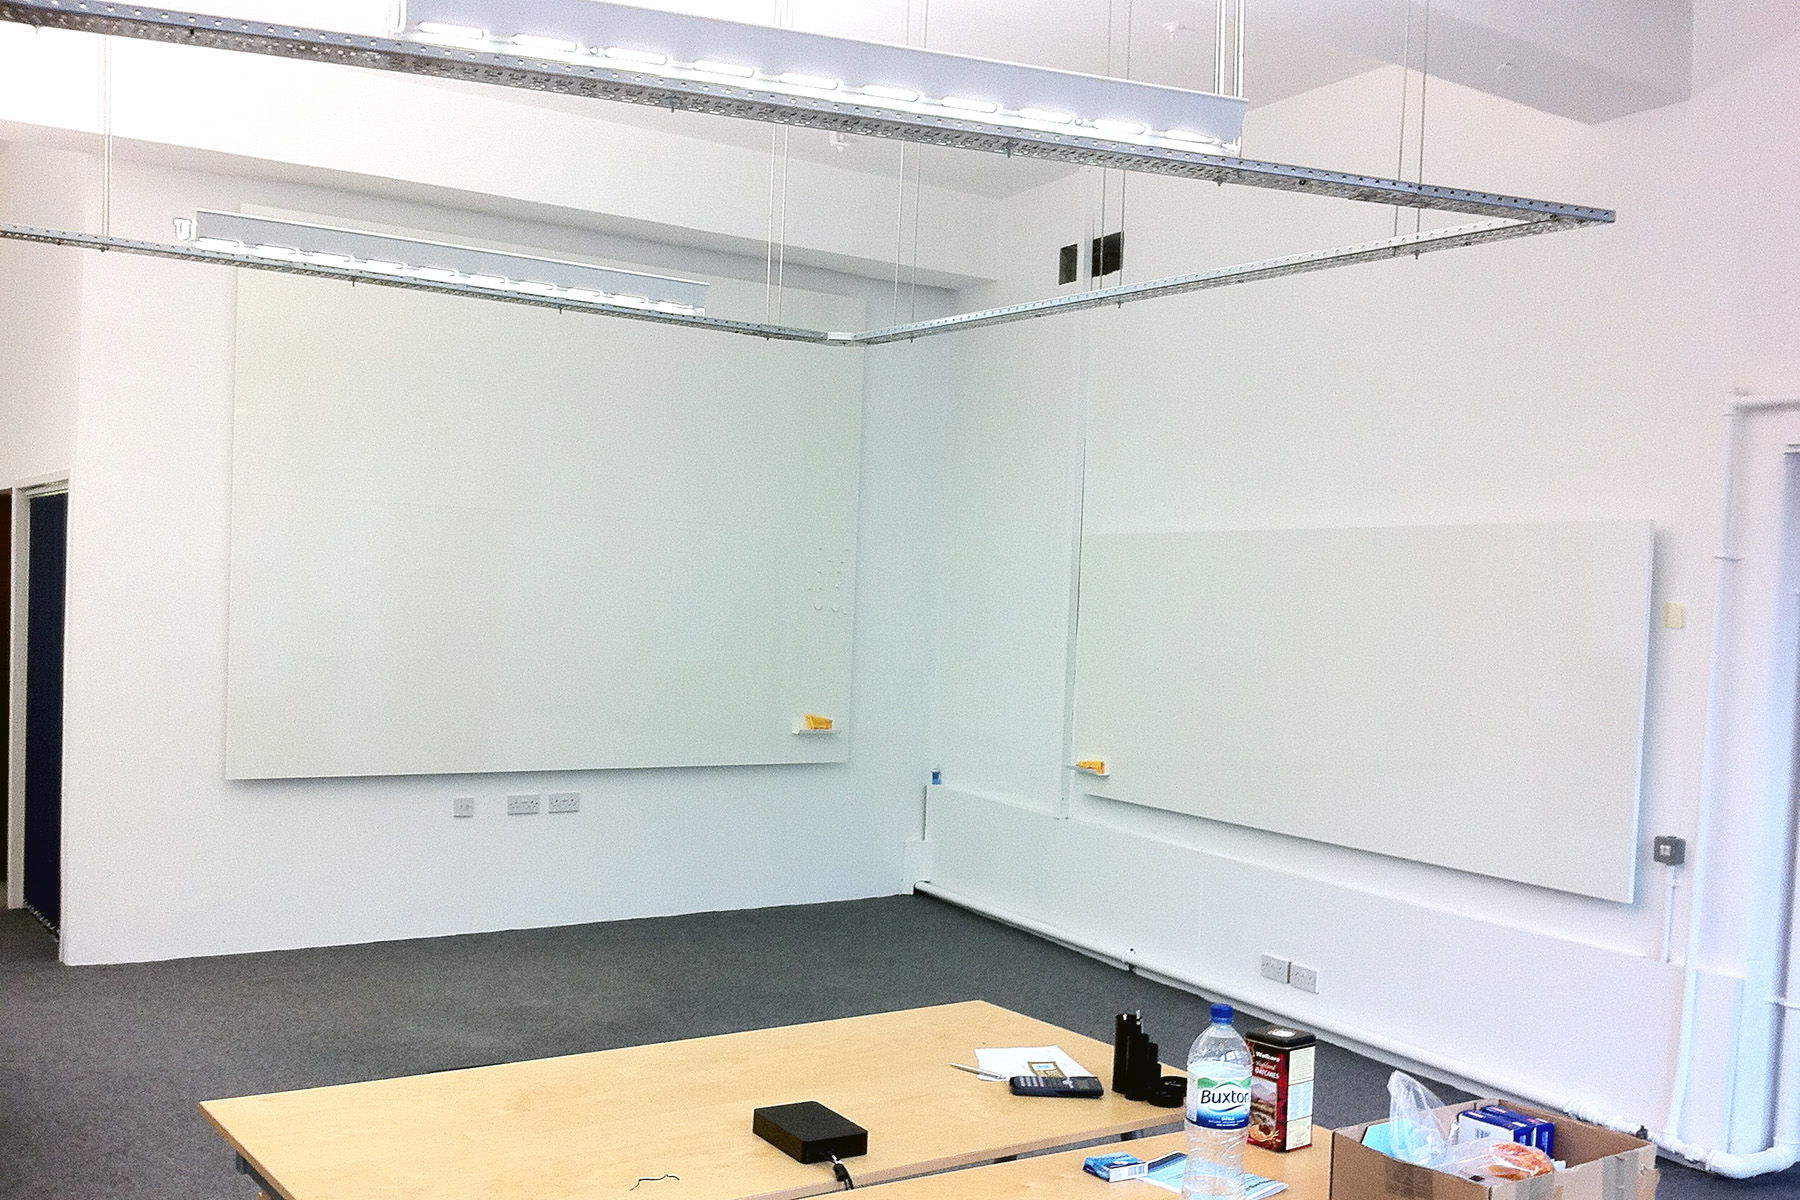 Frameless Whiteboard in two sizes on adjacent walls in the corner of an office